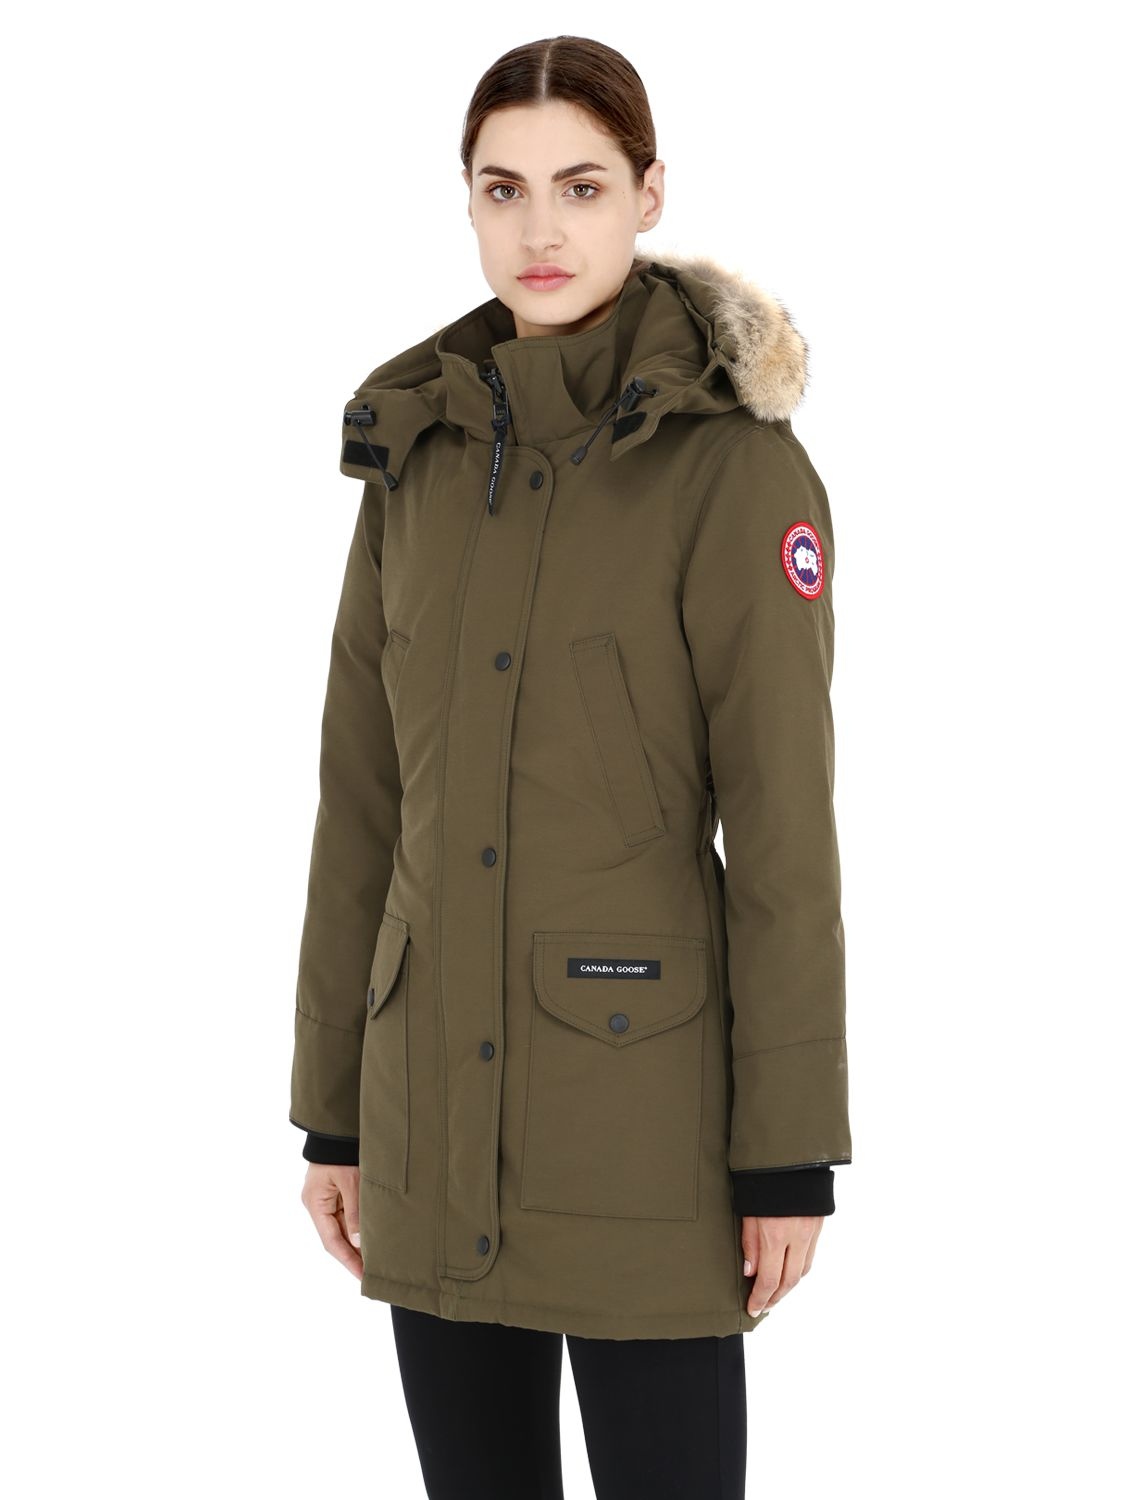 Where can i buy a canada goose jacket in toronto